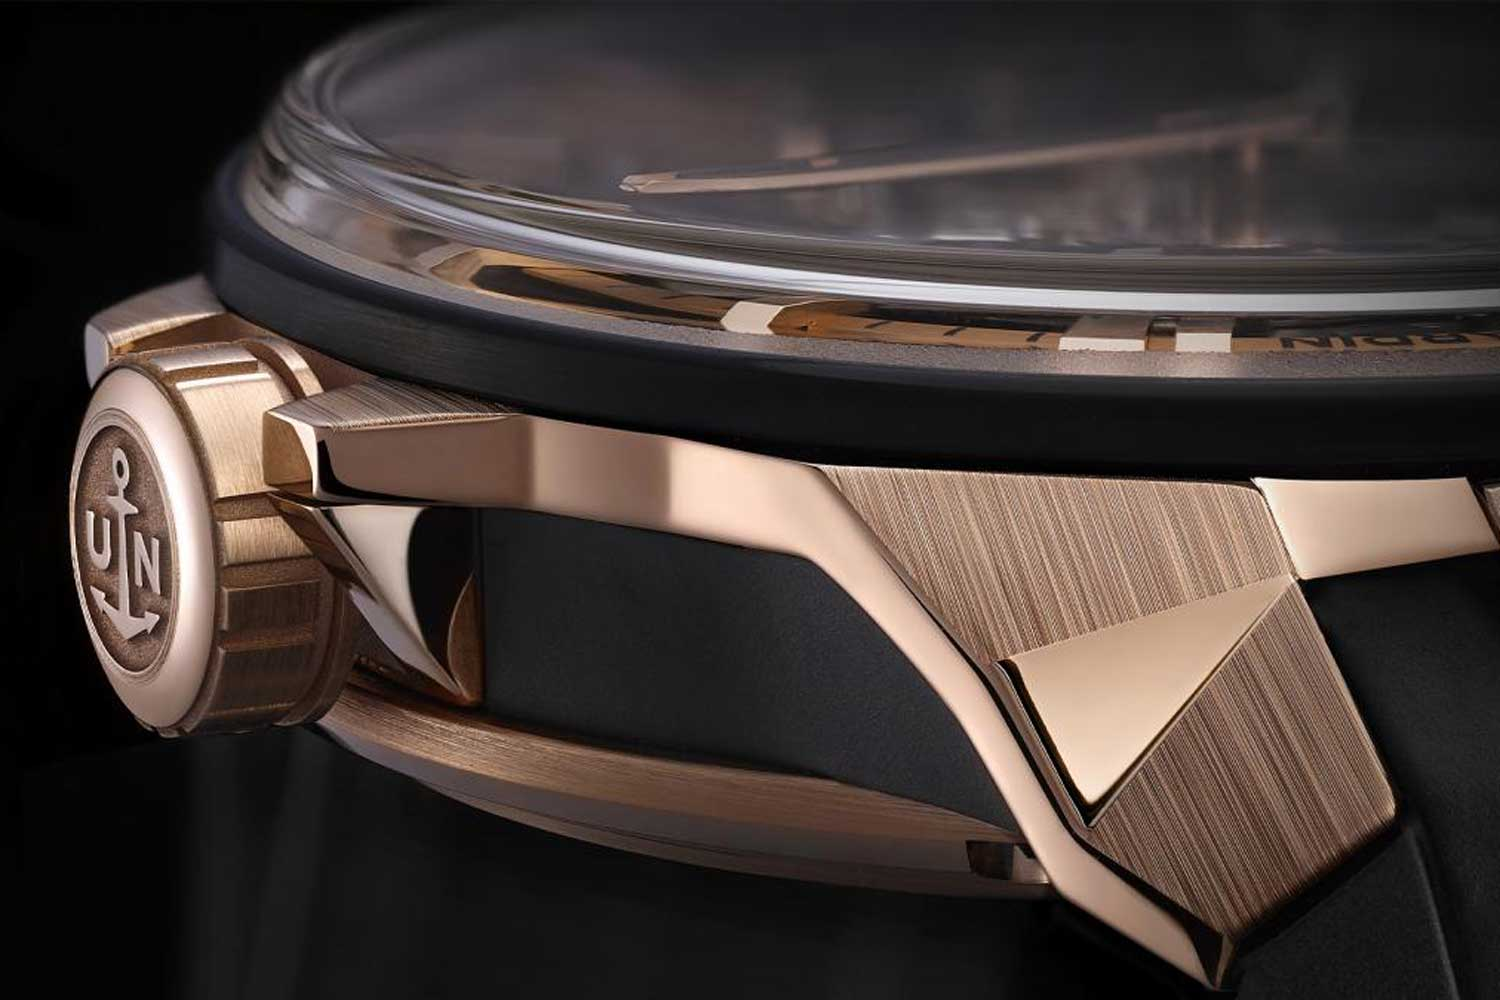 The 45mm rose gold case features a modular construction with a titanium middle section and faceted lugs.